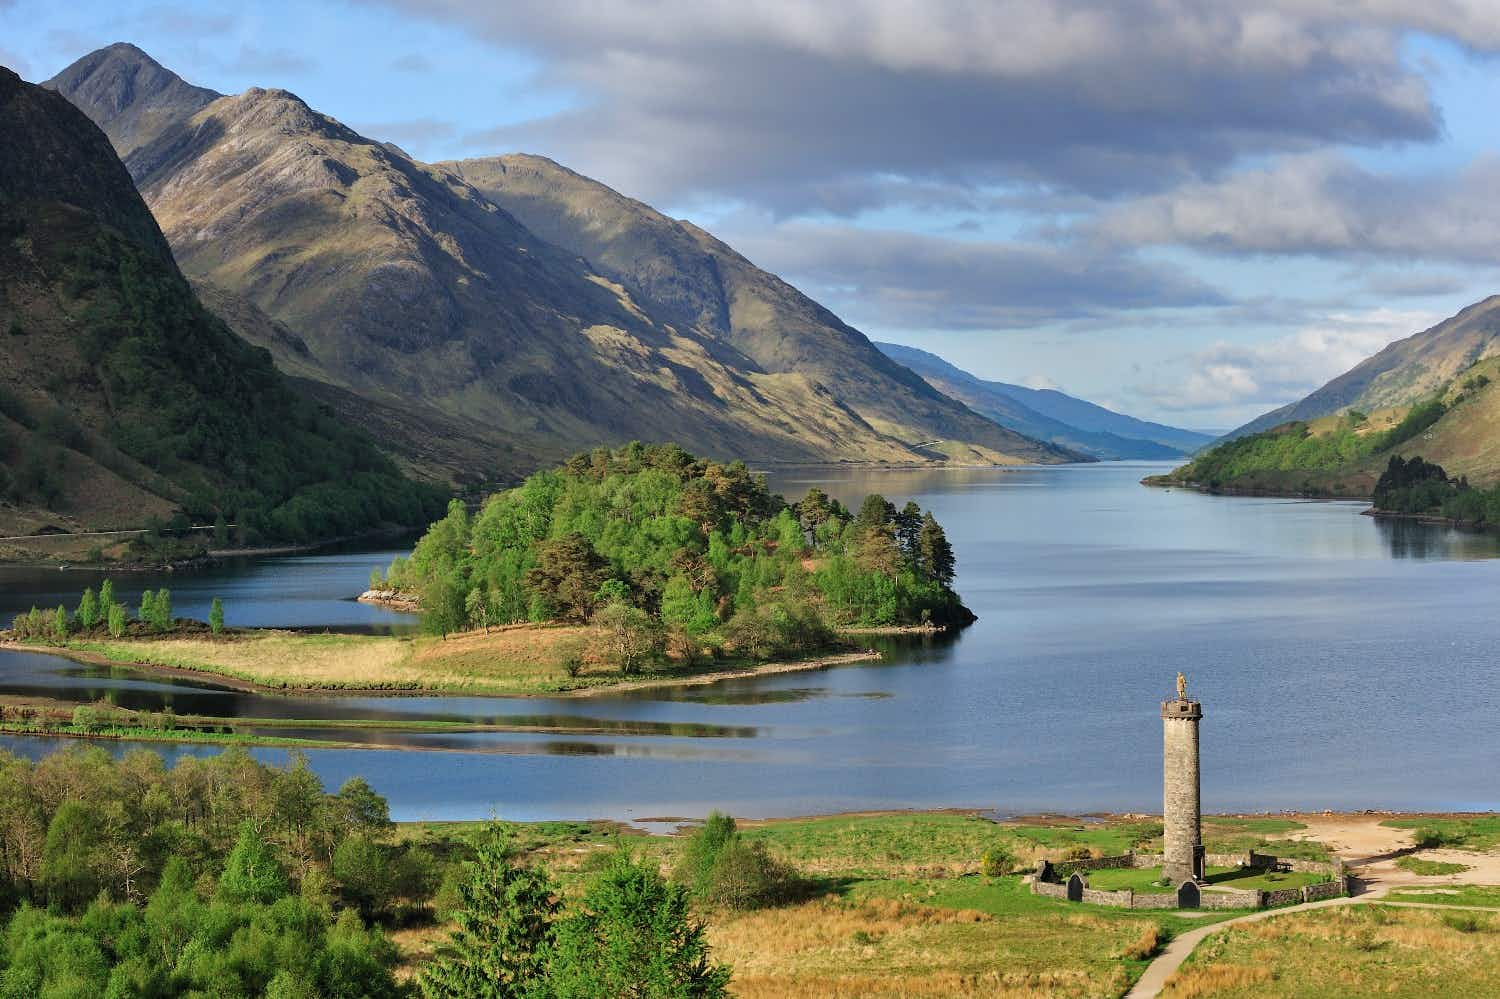 Harry Potter and Outlander fans are beating a path to these Scottish landmarks